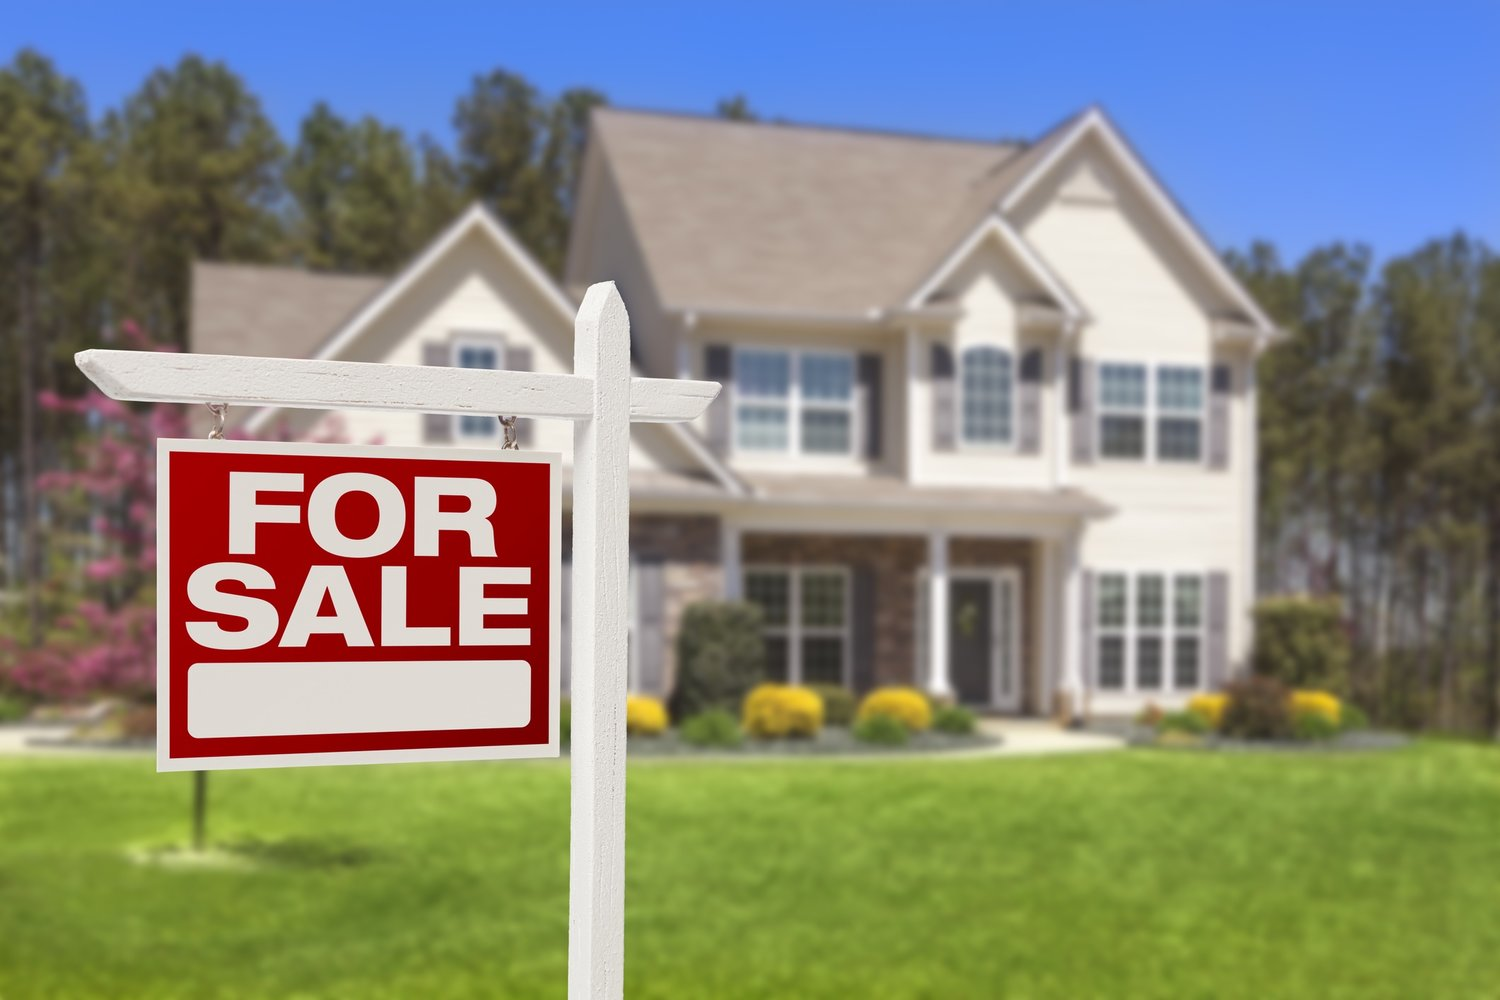 What To Know About Home Inspections Home Fax Inspections  Mi Home Inspections For Buyers Sellers .